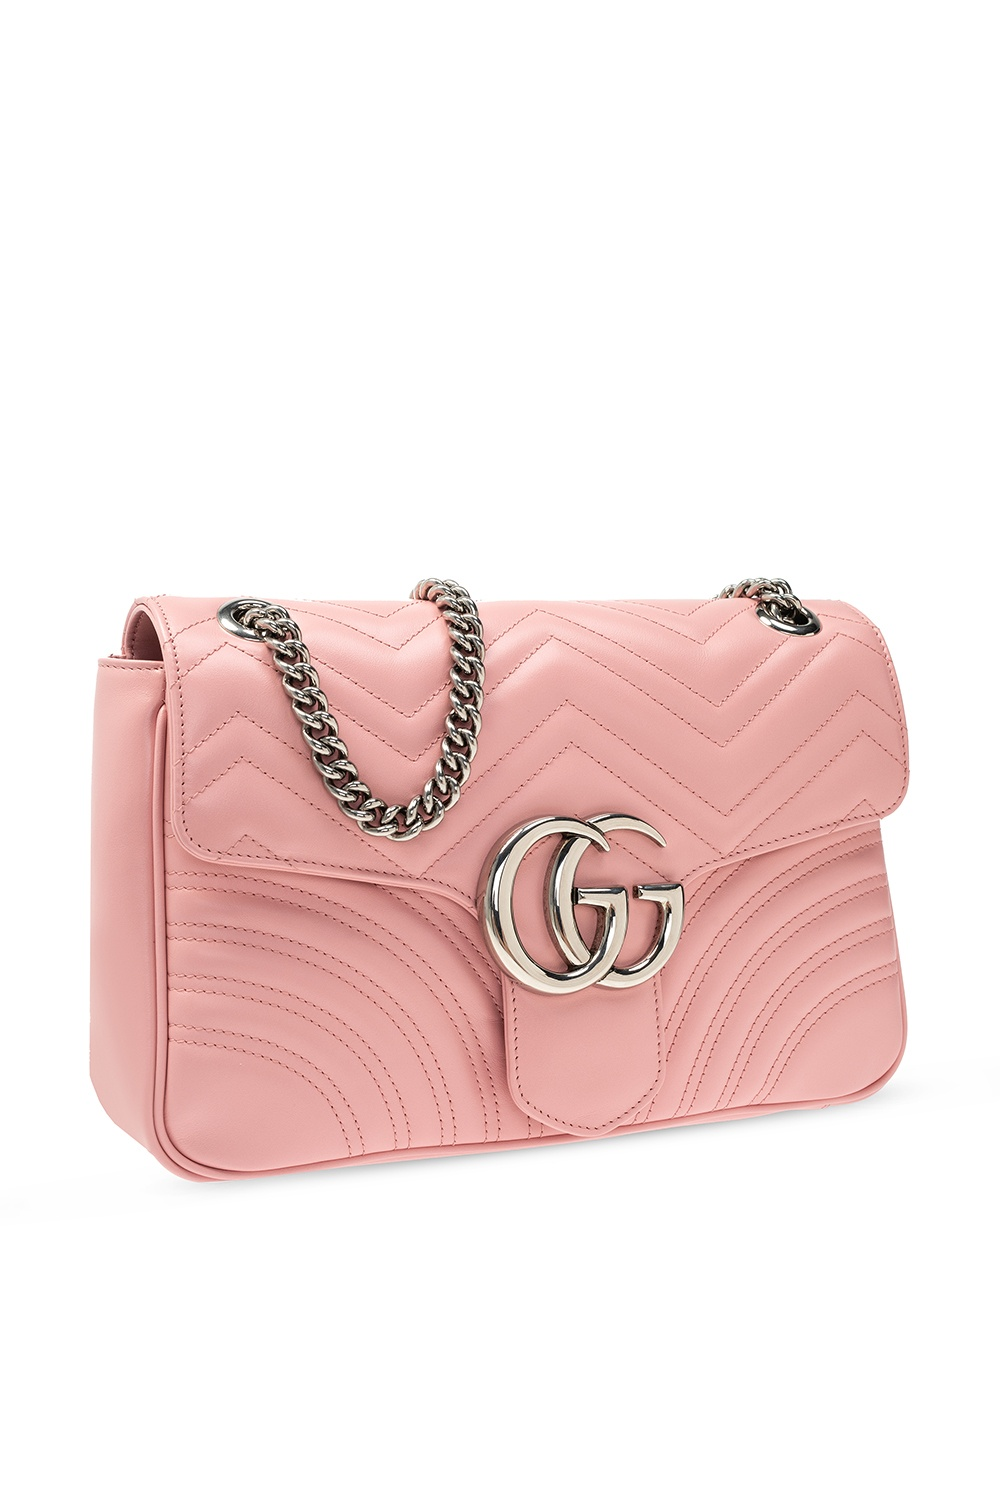 Gucci 'GG Marmont' quilted shoulder bag